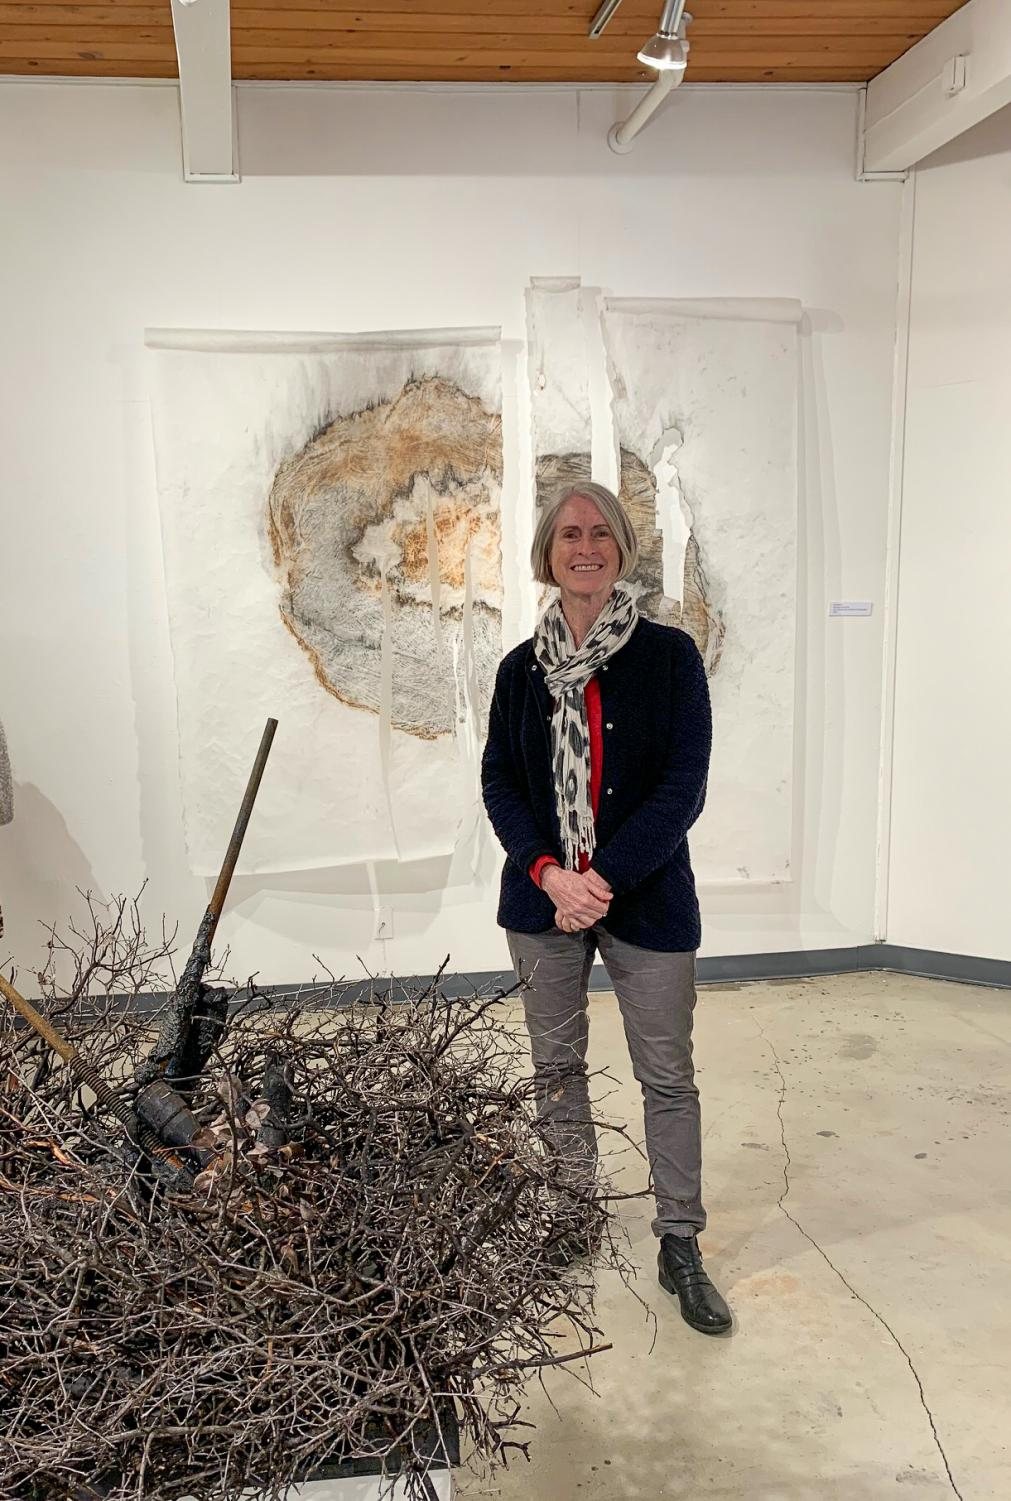 Eve Werner with two pieces of art she contributed to the gallery (Autumn Jarmel/The Inquirer).